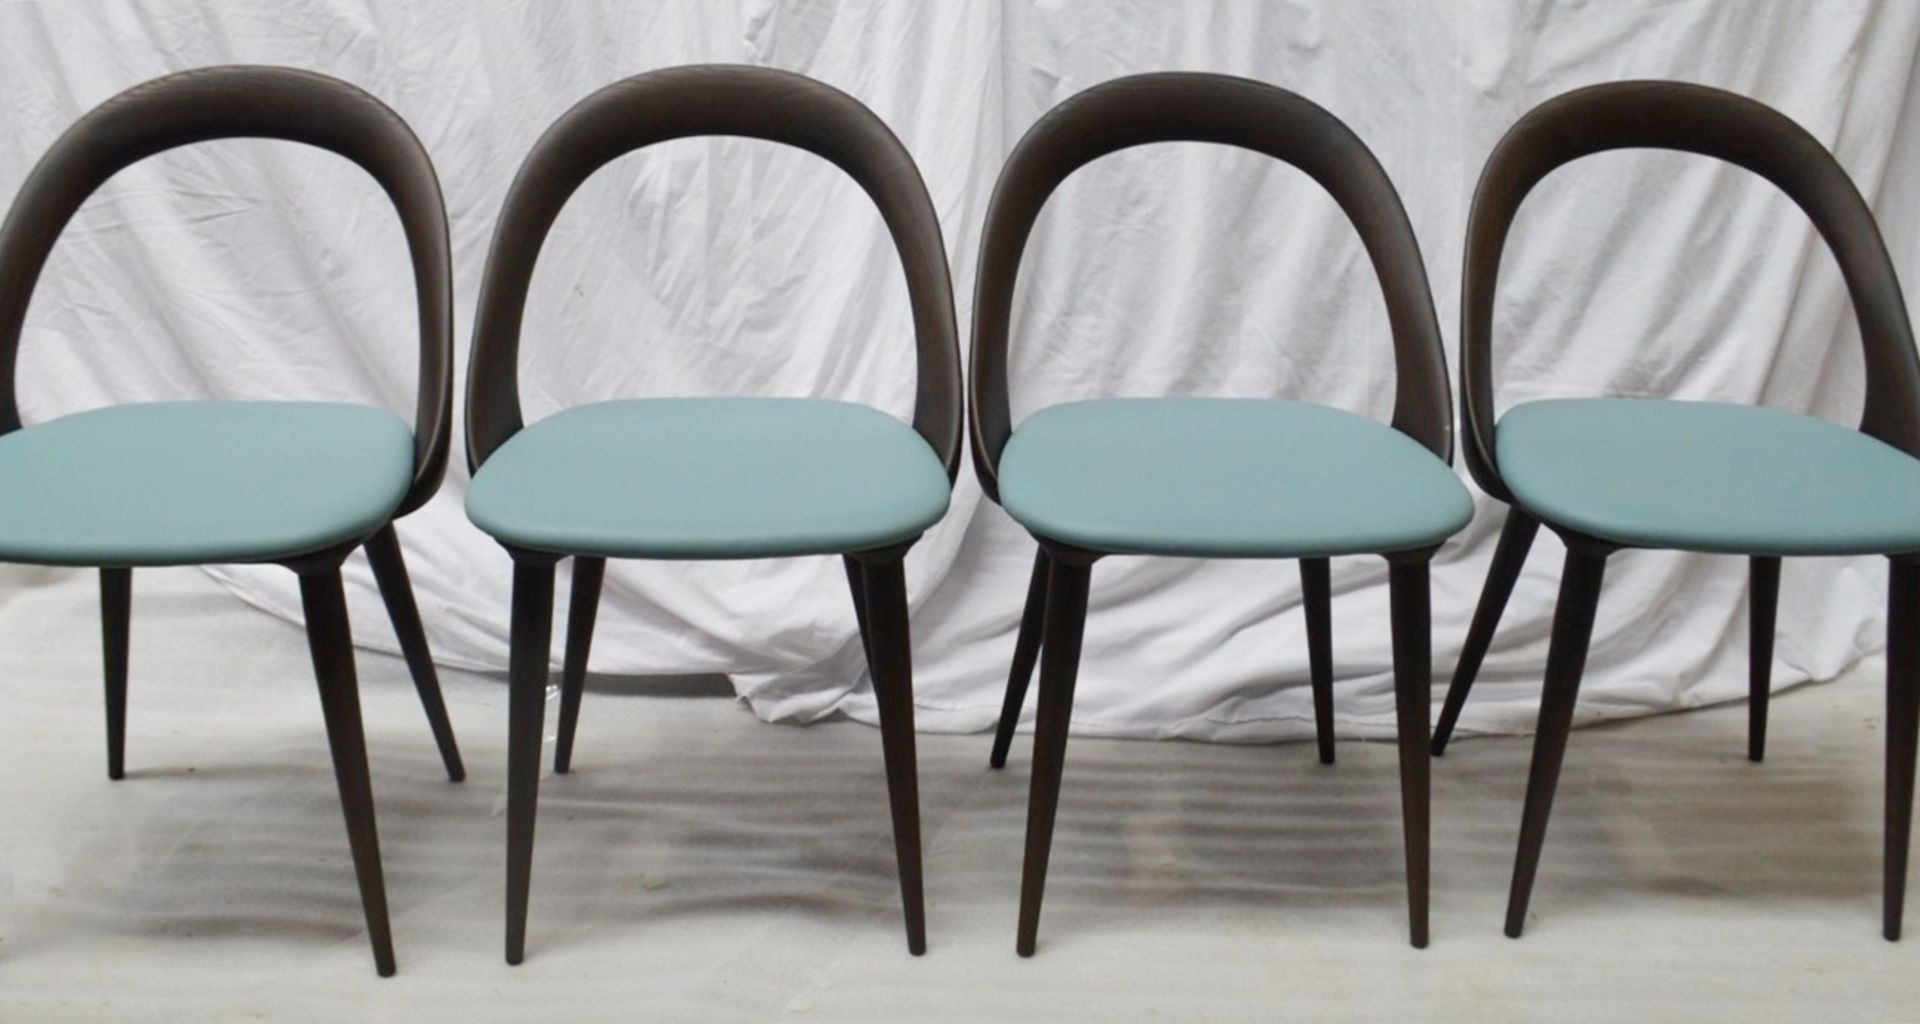 Set Of 4 x PORADA 'Ester' Italian Designer Dining Chairs Featuring Leather Seats - RRP £5,120 - Image 5 of 11